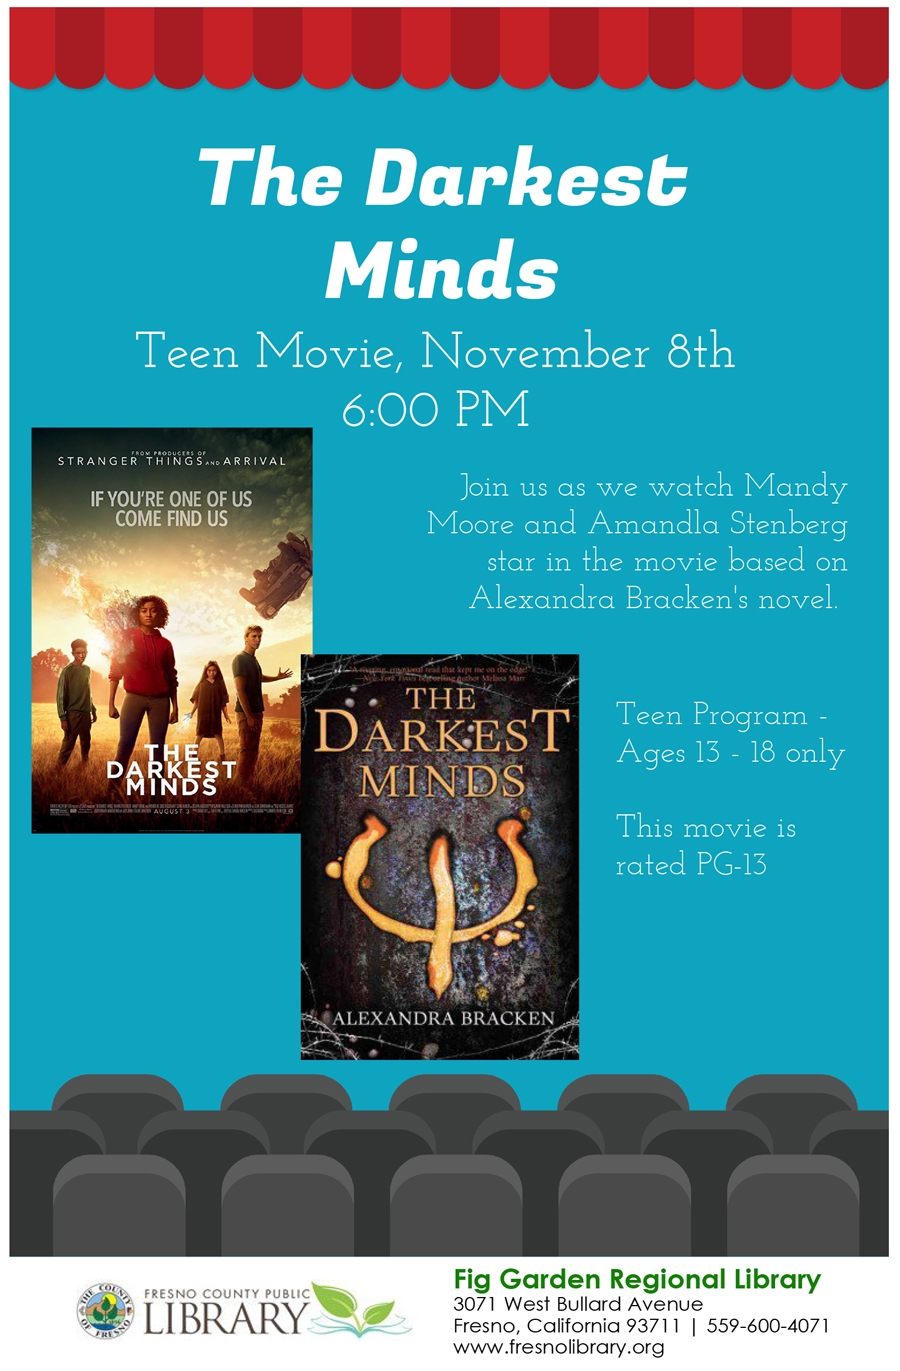 FIG_The_Darkest_Minds_Flyer